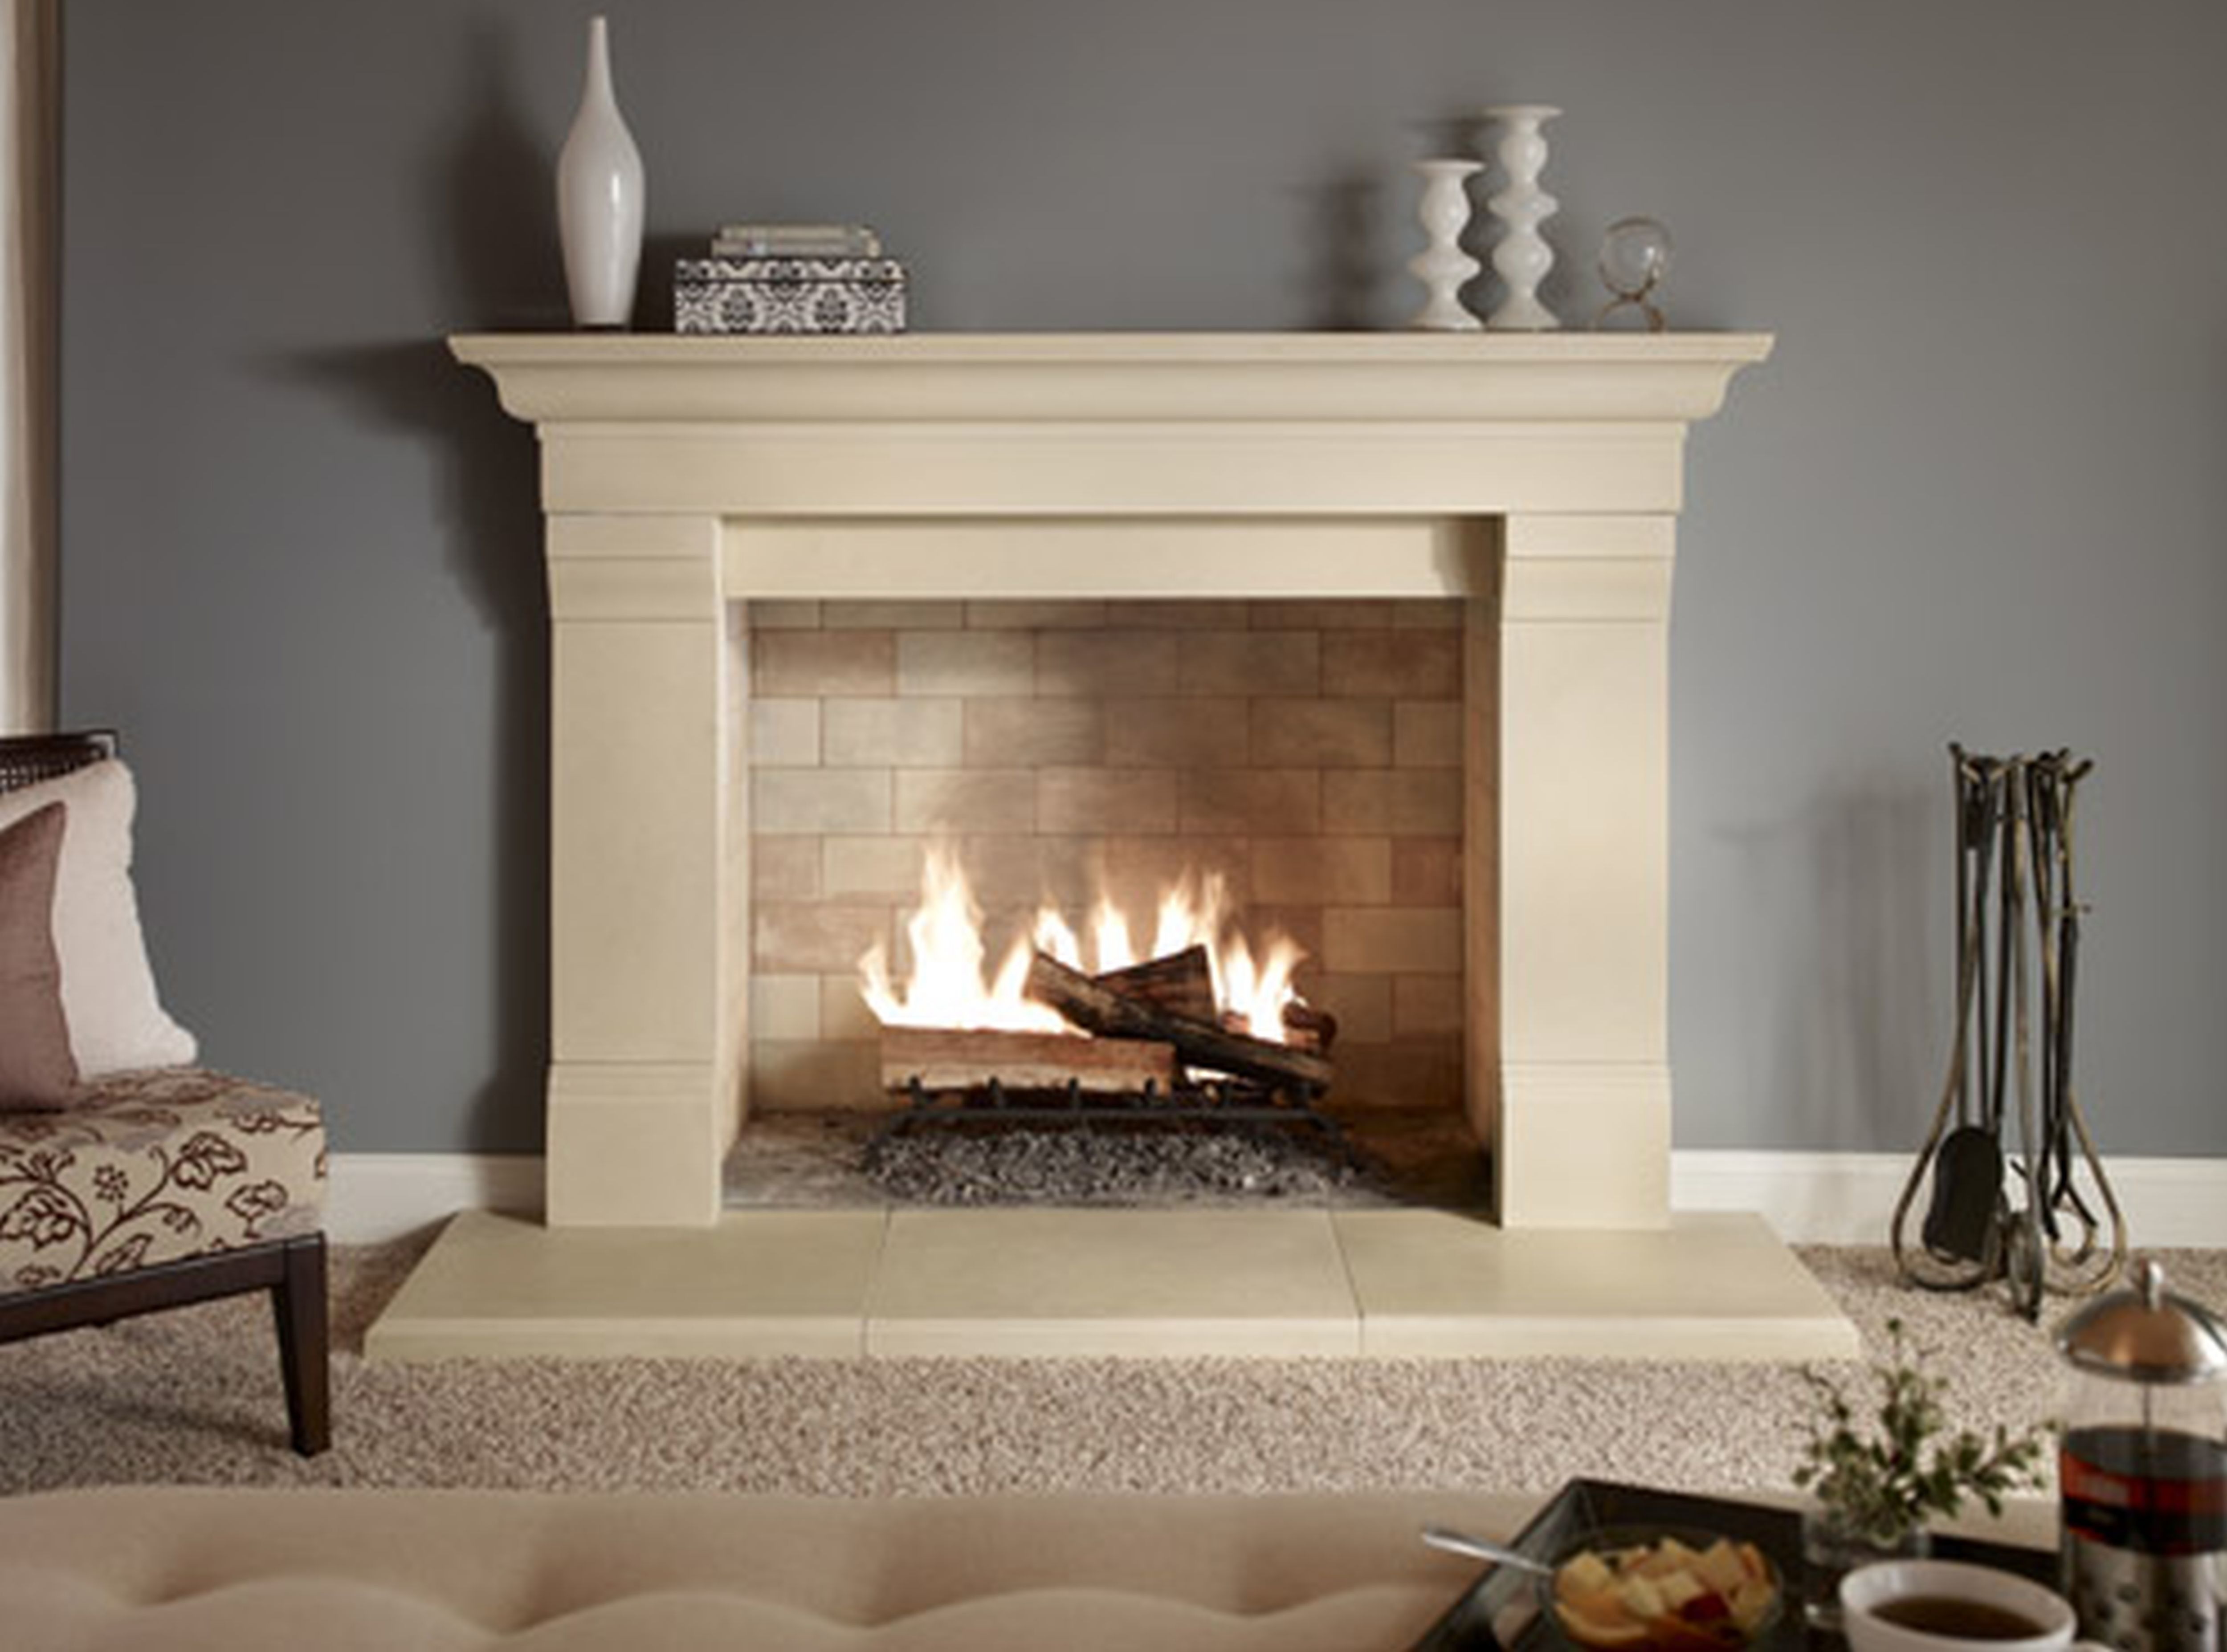 Modern Fireplace Mantel Decor Pin Fireplace Mantel Kits Build Your Own Decoration On